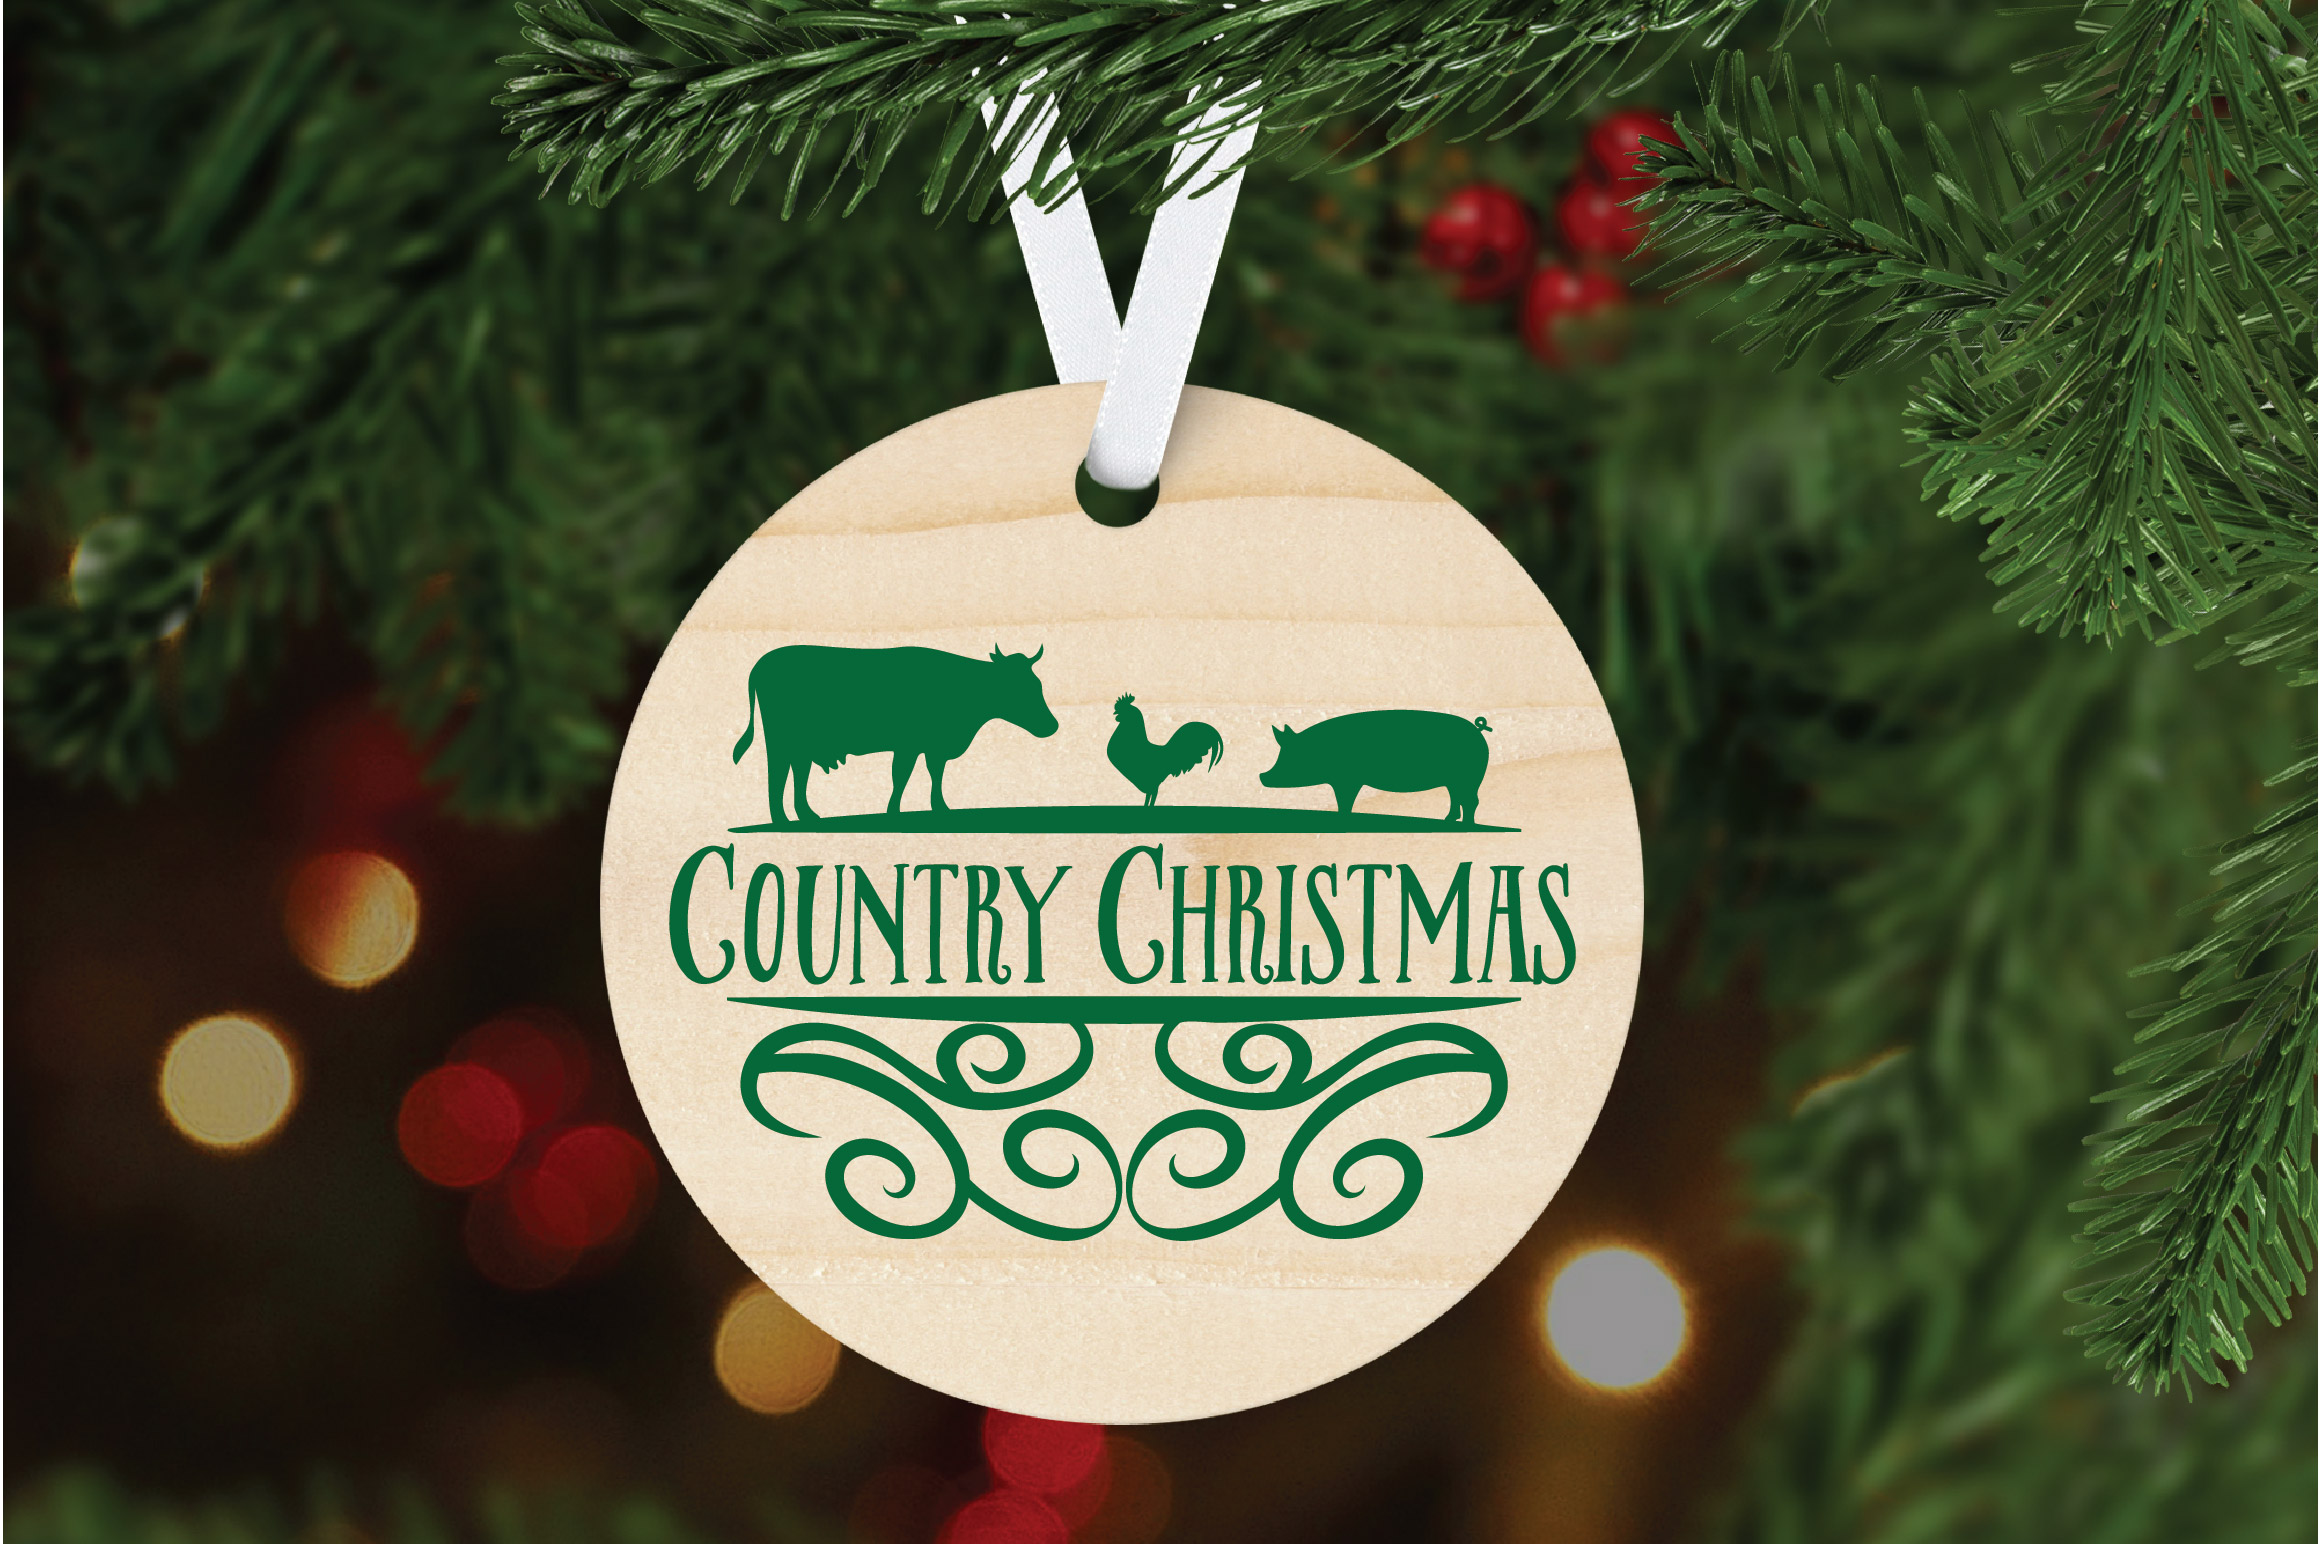 Christmas SVG Cut File - Country Christmas SVG DXF PNG EPS example image 6